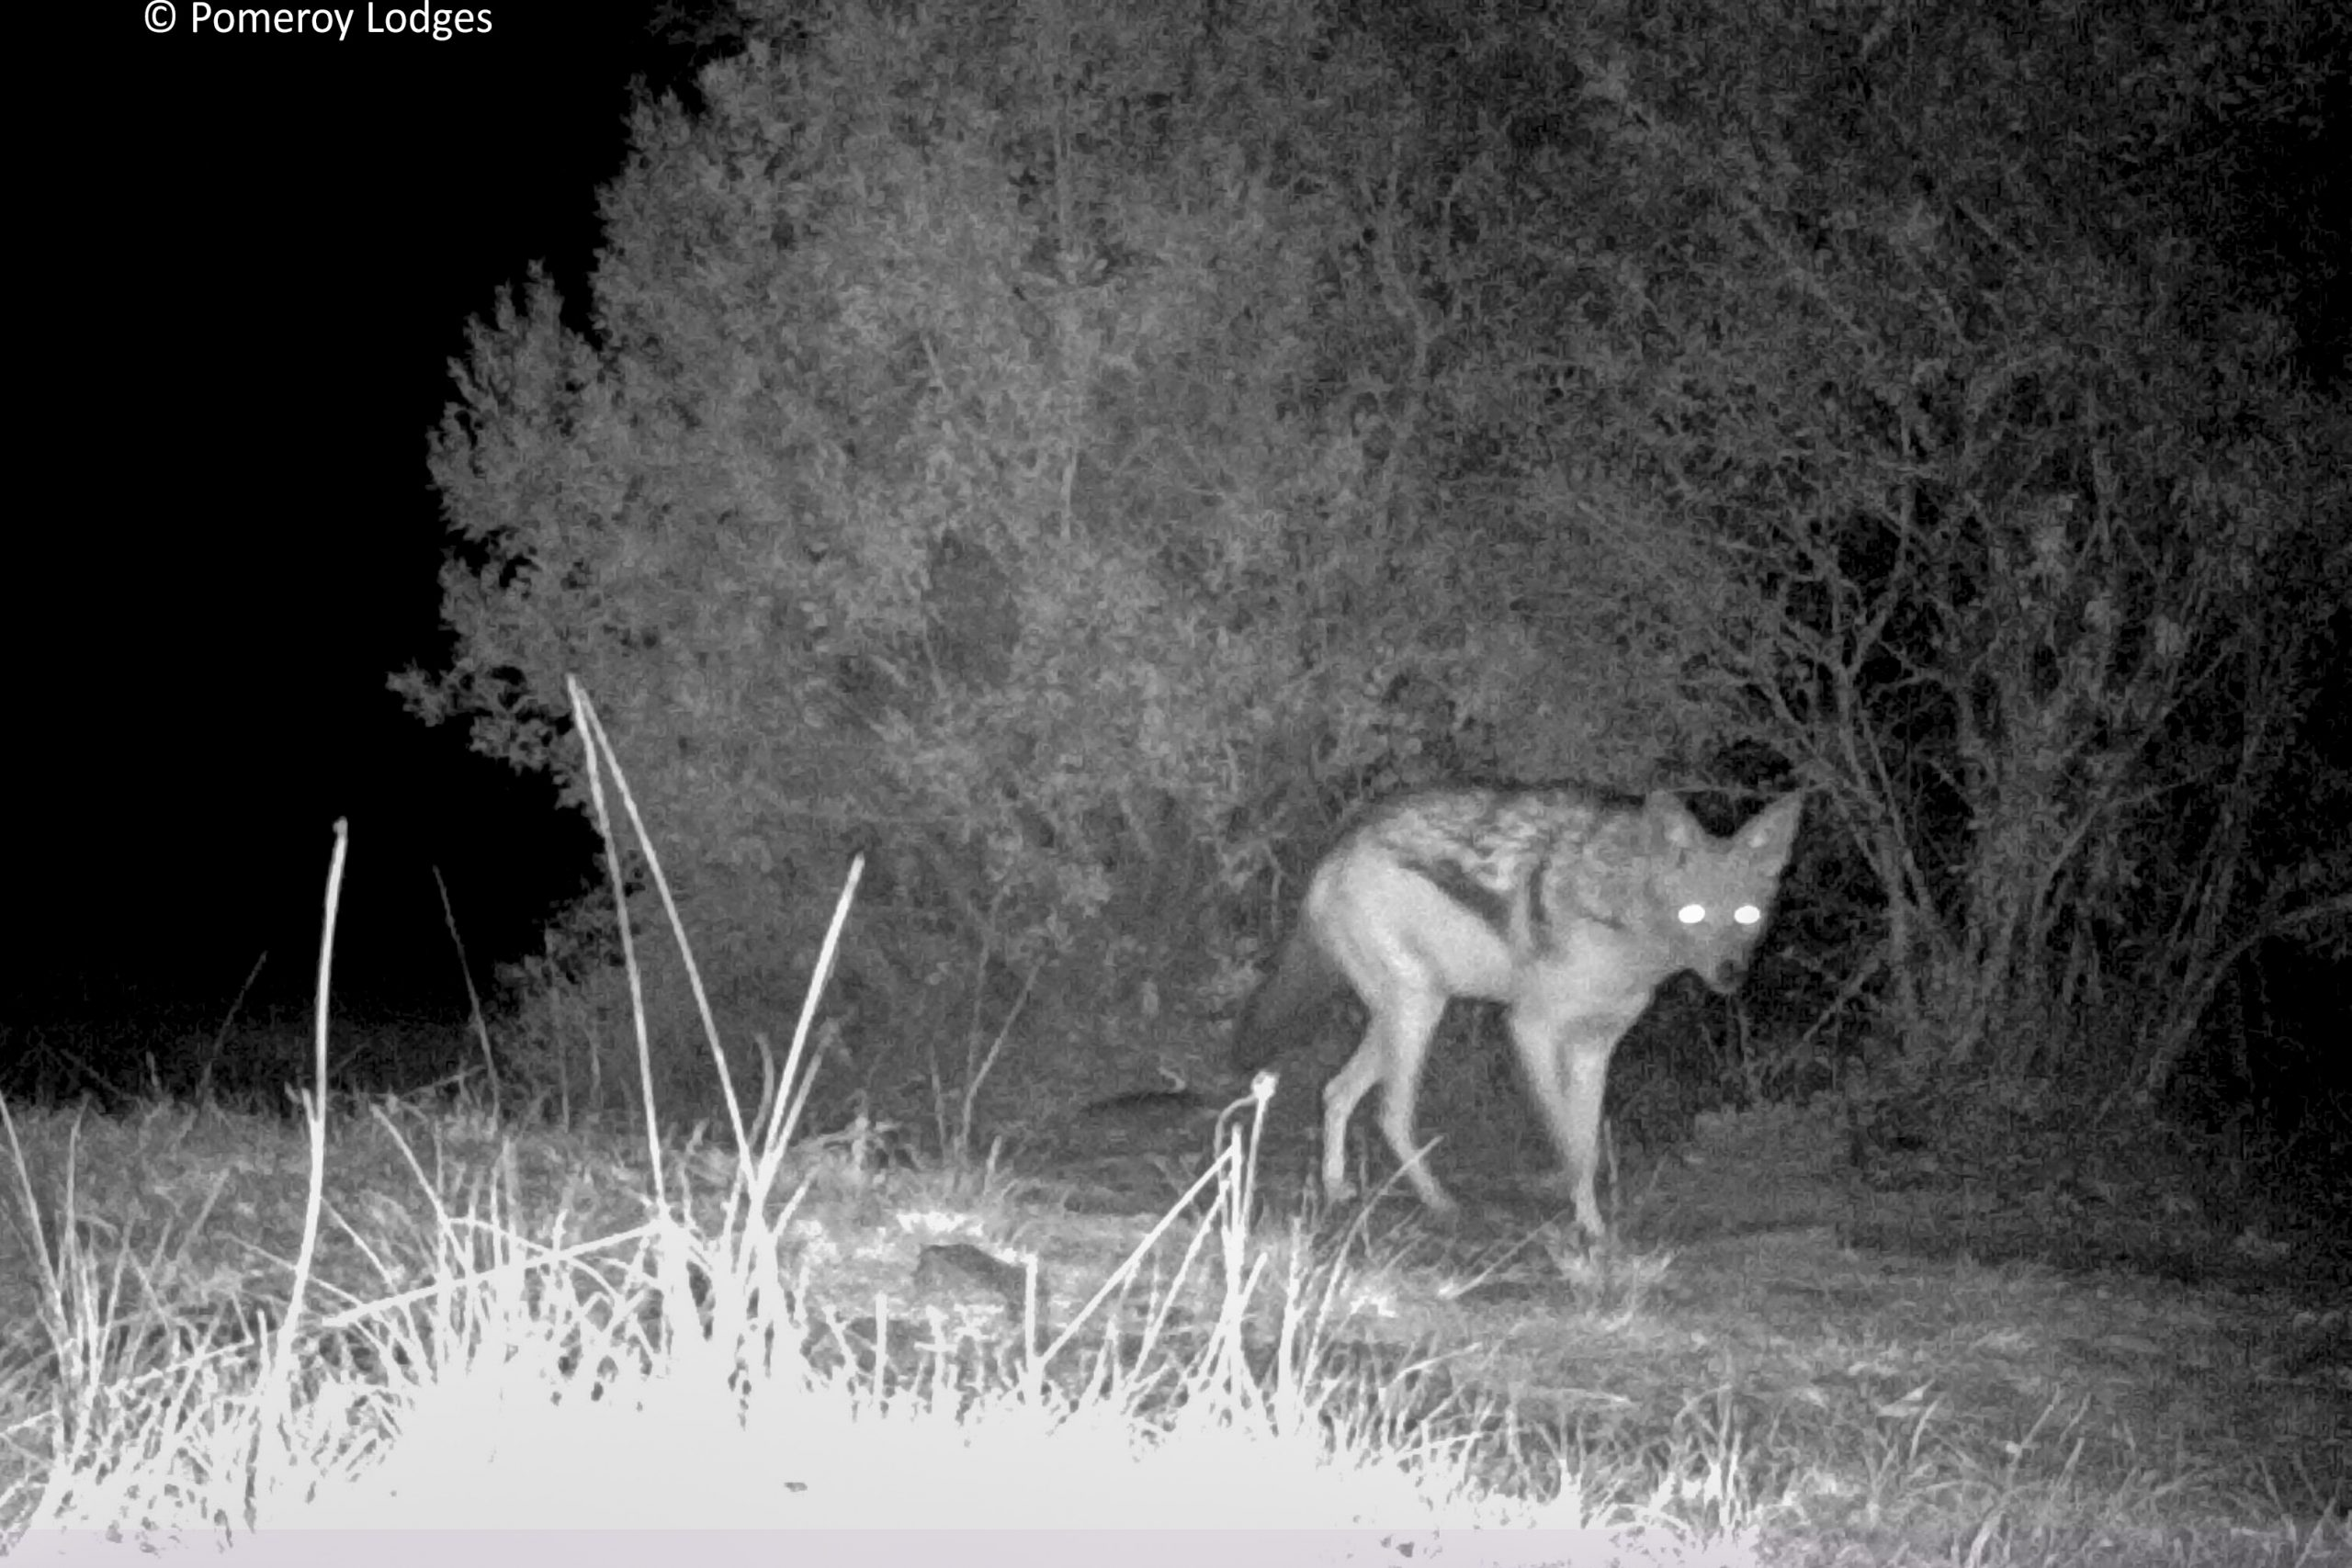 Jackal spotted at night on Pomeroy